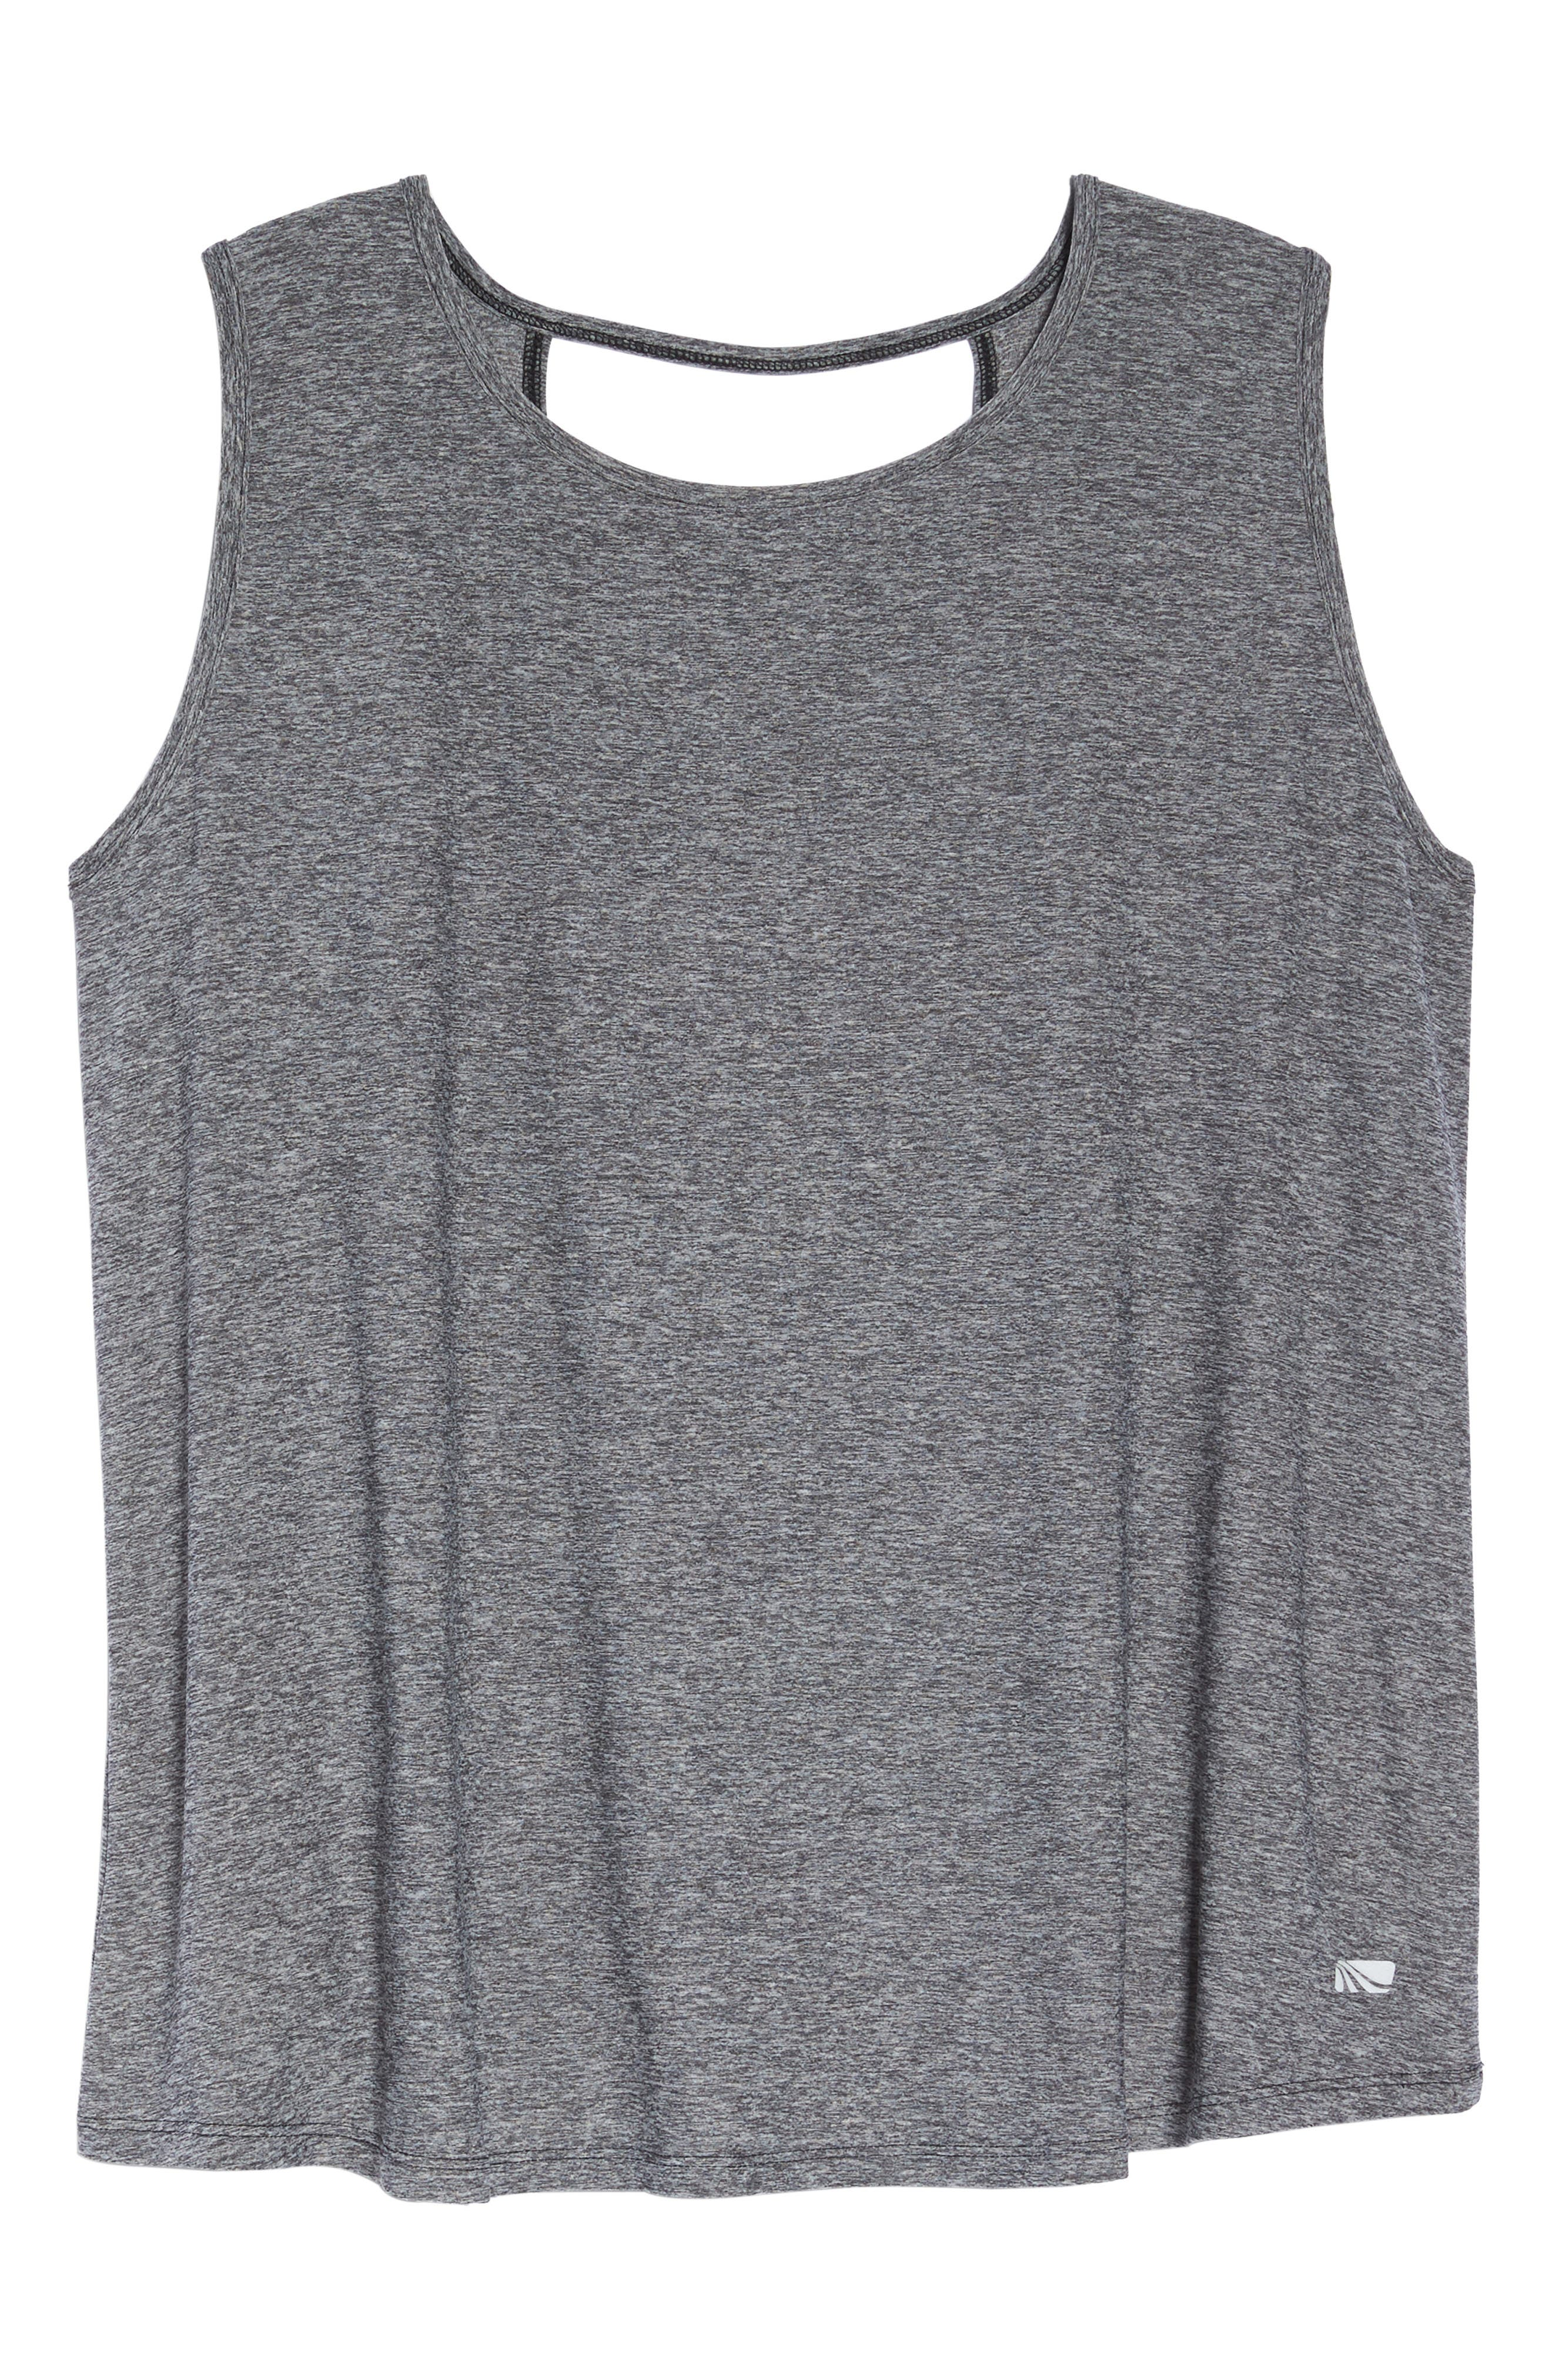 Crossover Tank,                             Alternate thumbnail 6, color,                             Heather Charcoal